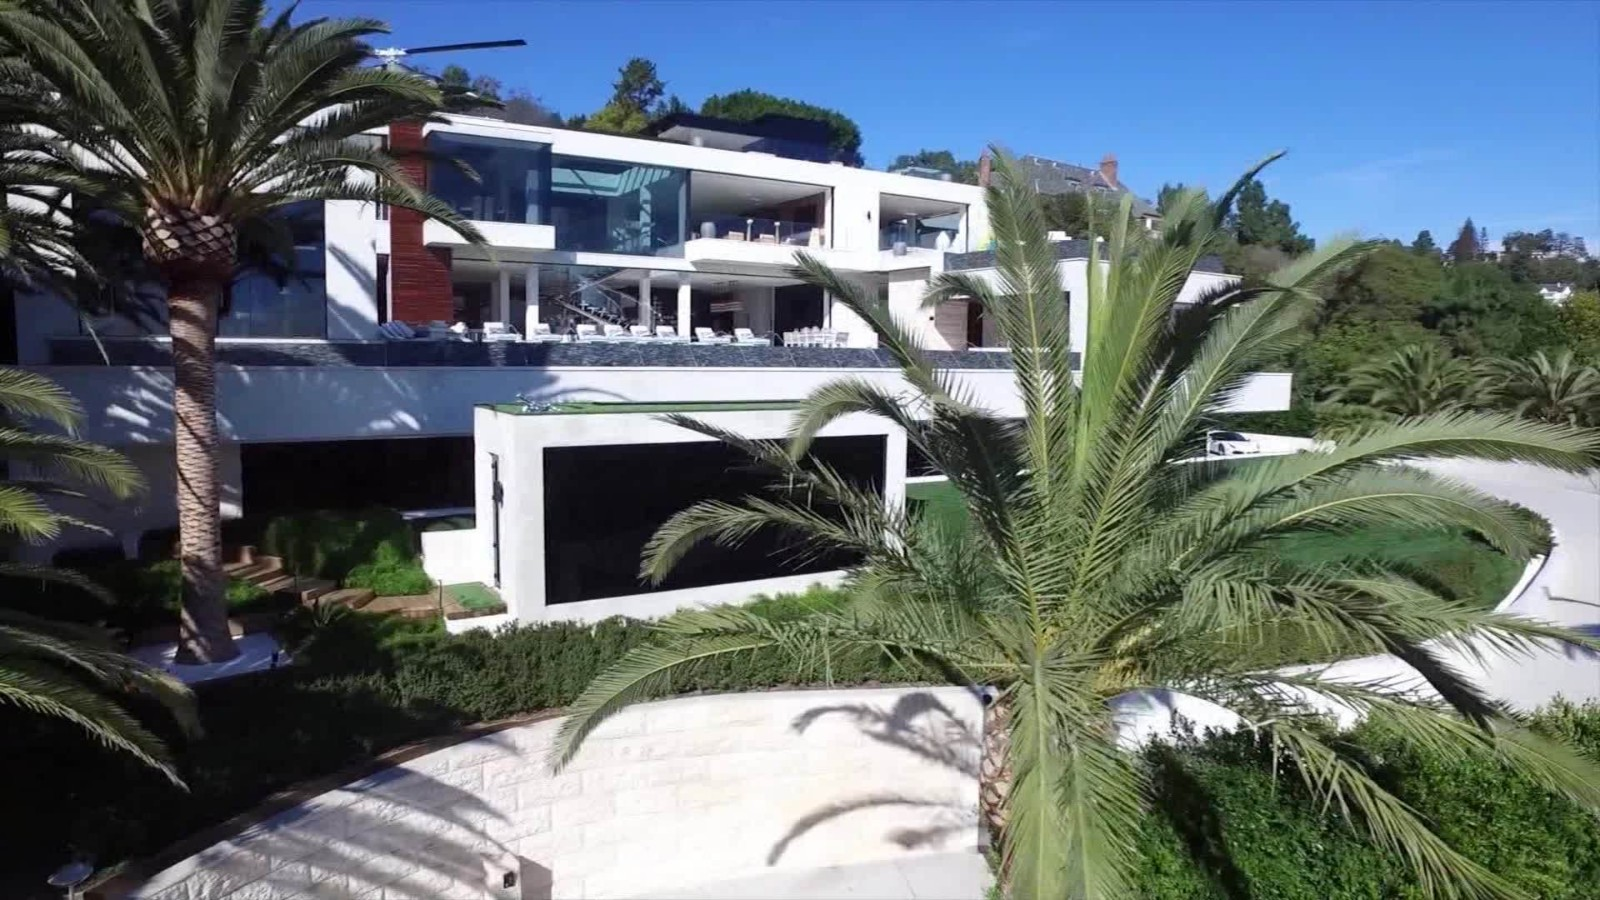 see inside the priciest home for sale in us - cnn video